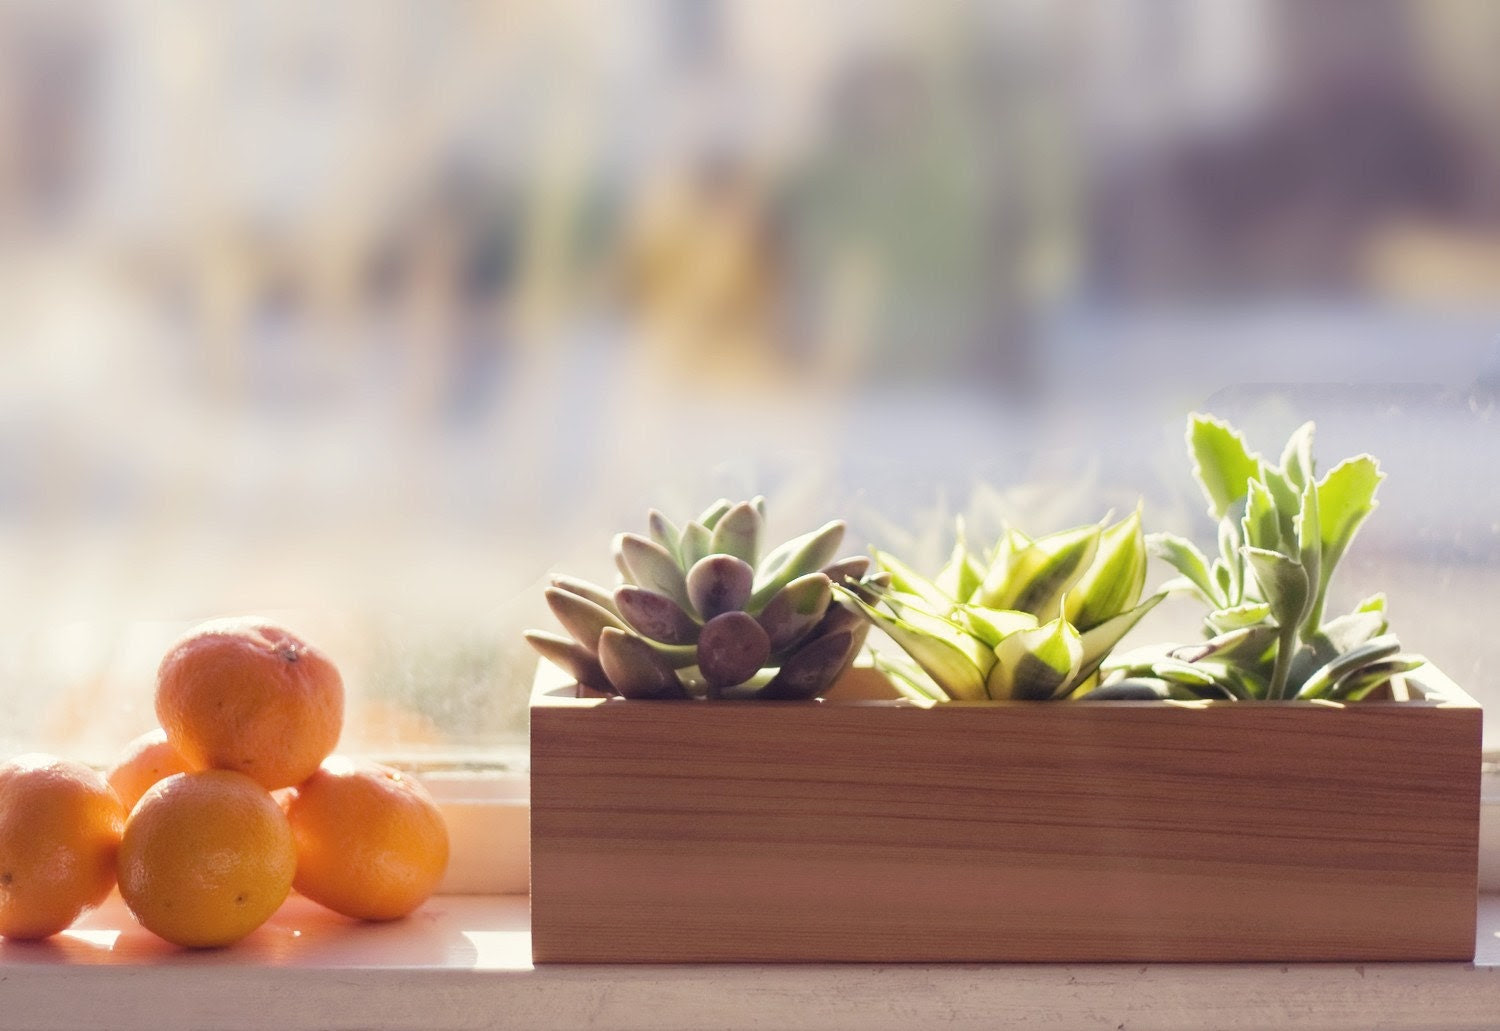 Minimalist Planter Box for Fresh Herbs or Succulents, Re-Milled Western Red Cedar Wood